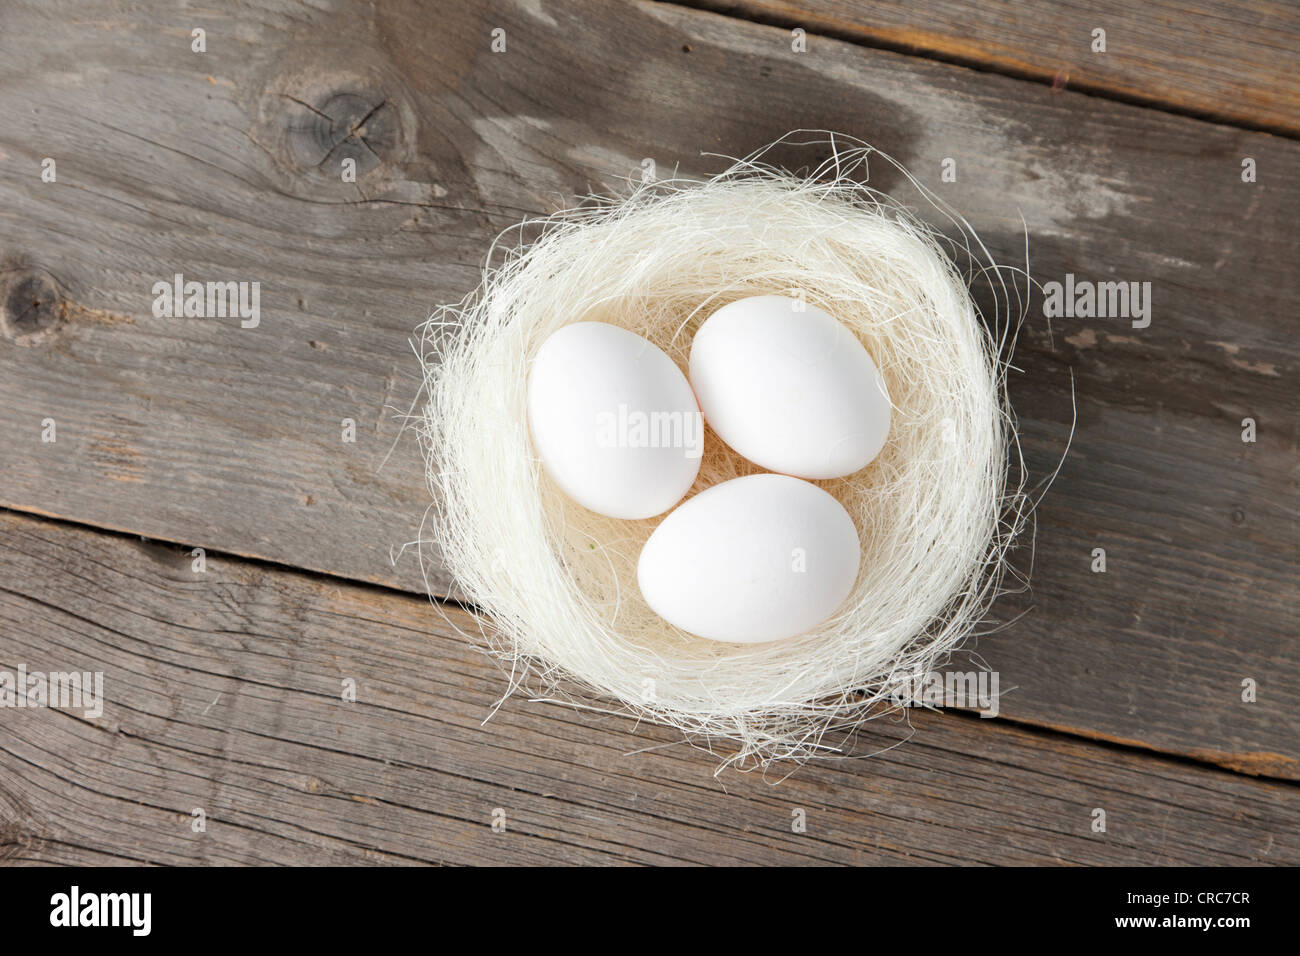 Eggs in nest on wooden counter - Stock Image